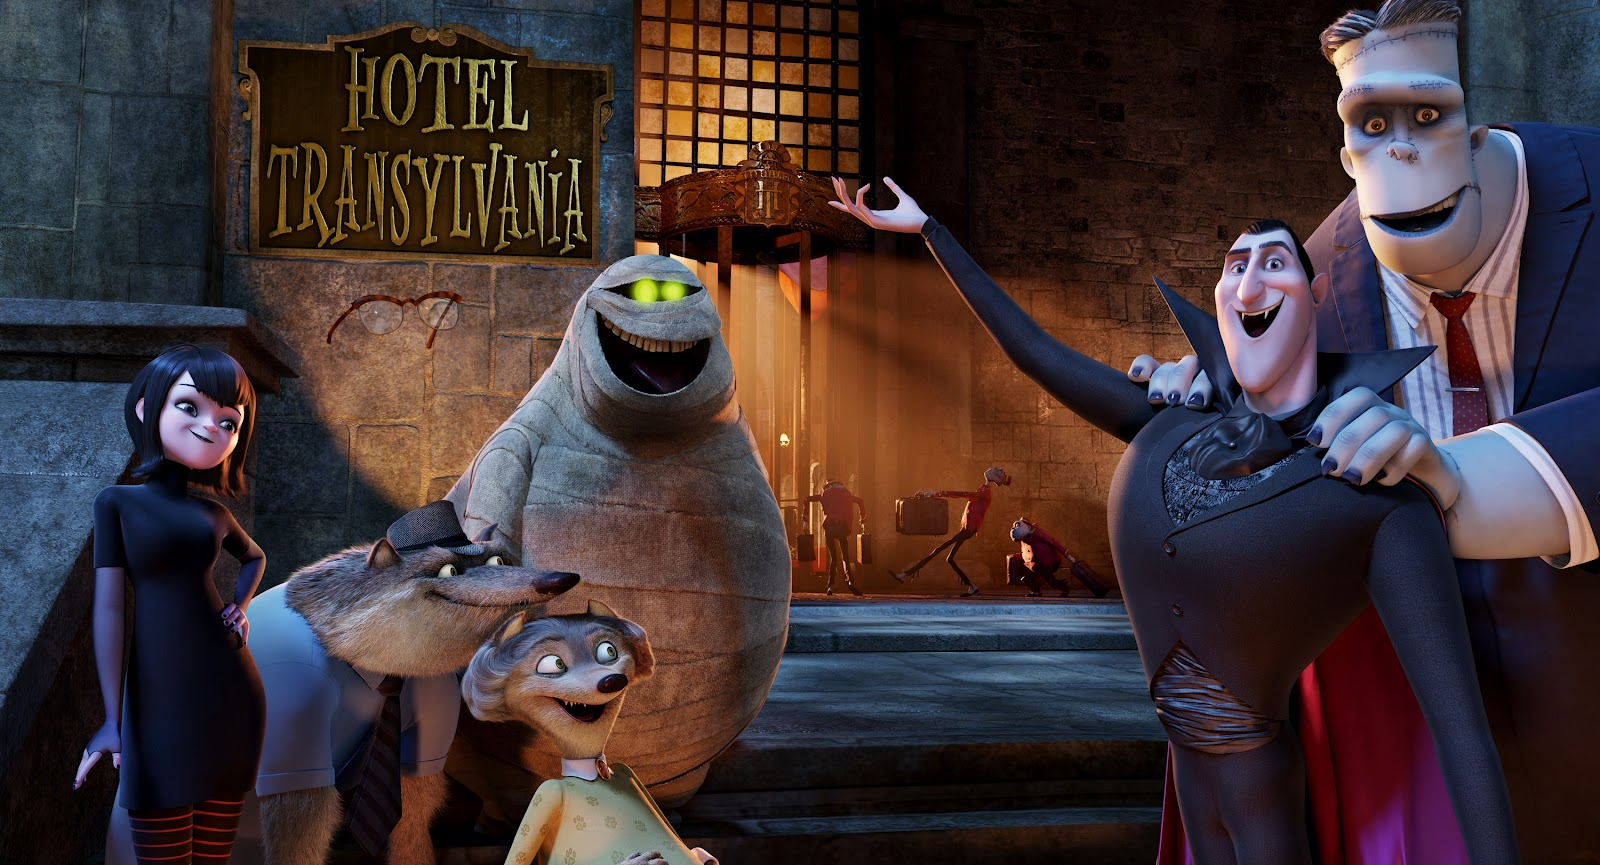 Ascending Butterfly Hotel Transylvania Movie Review At A Theater